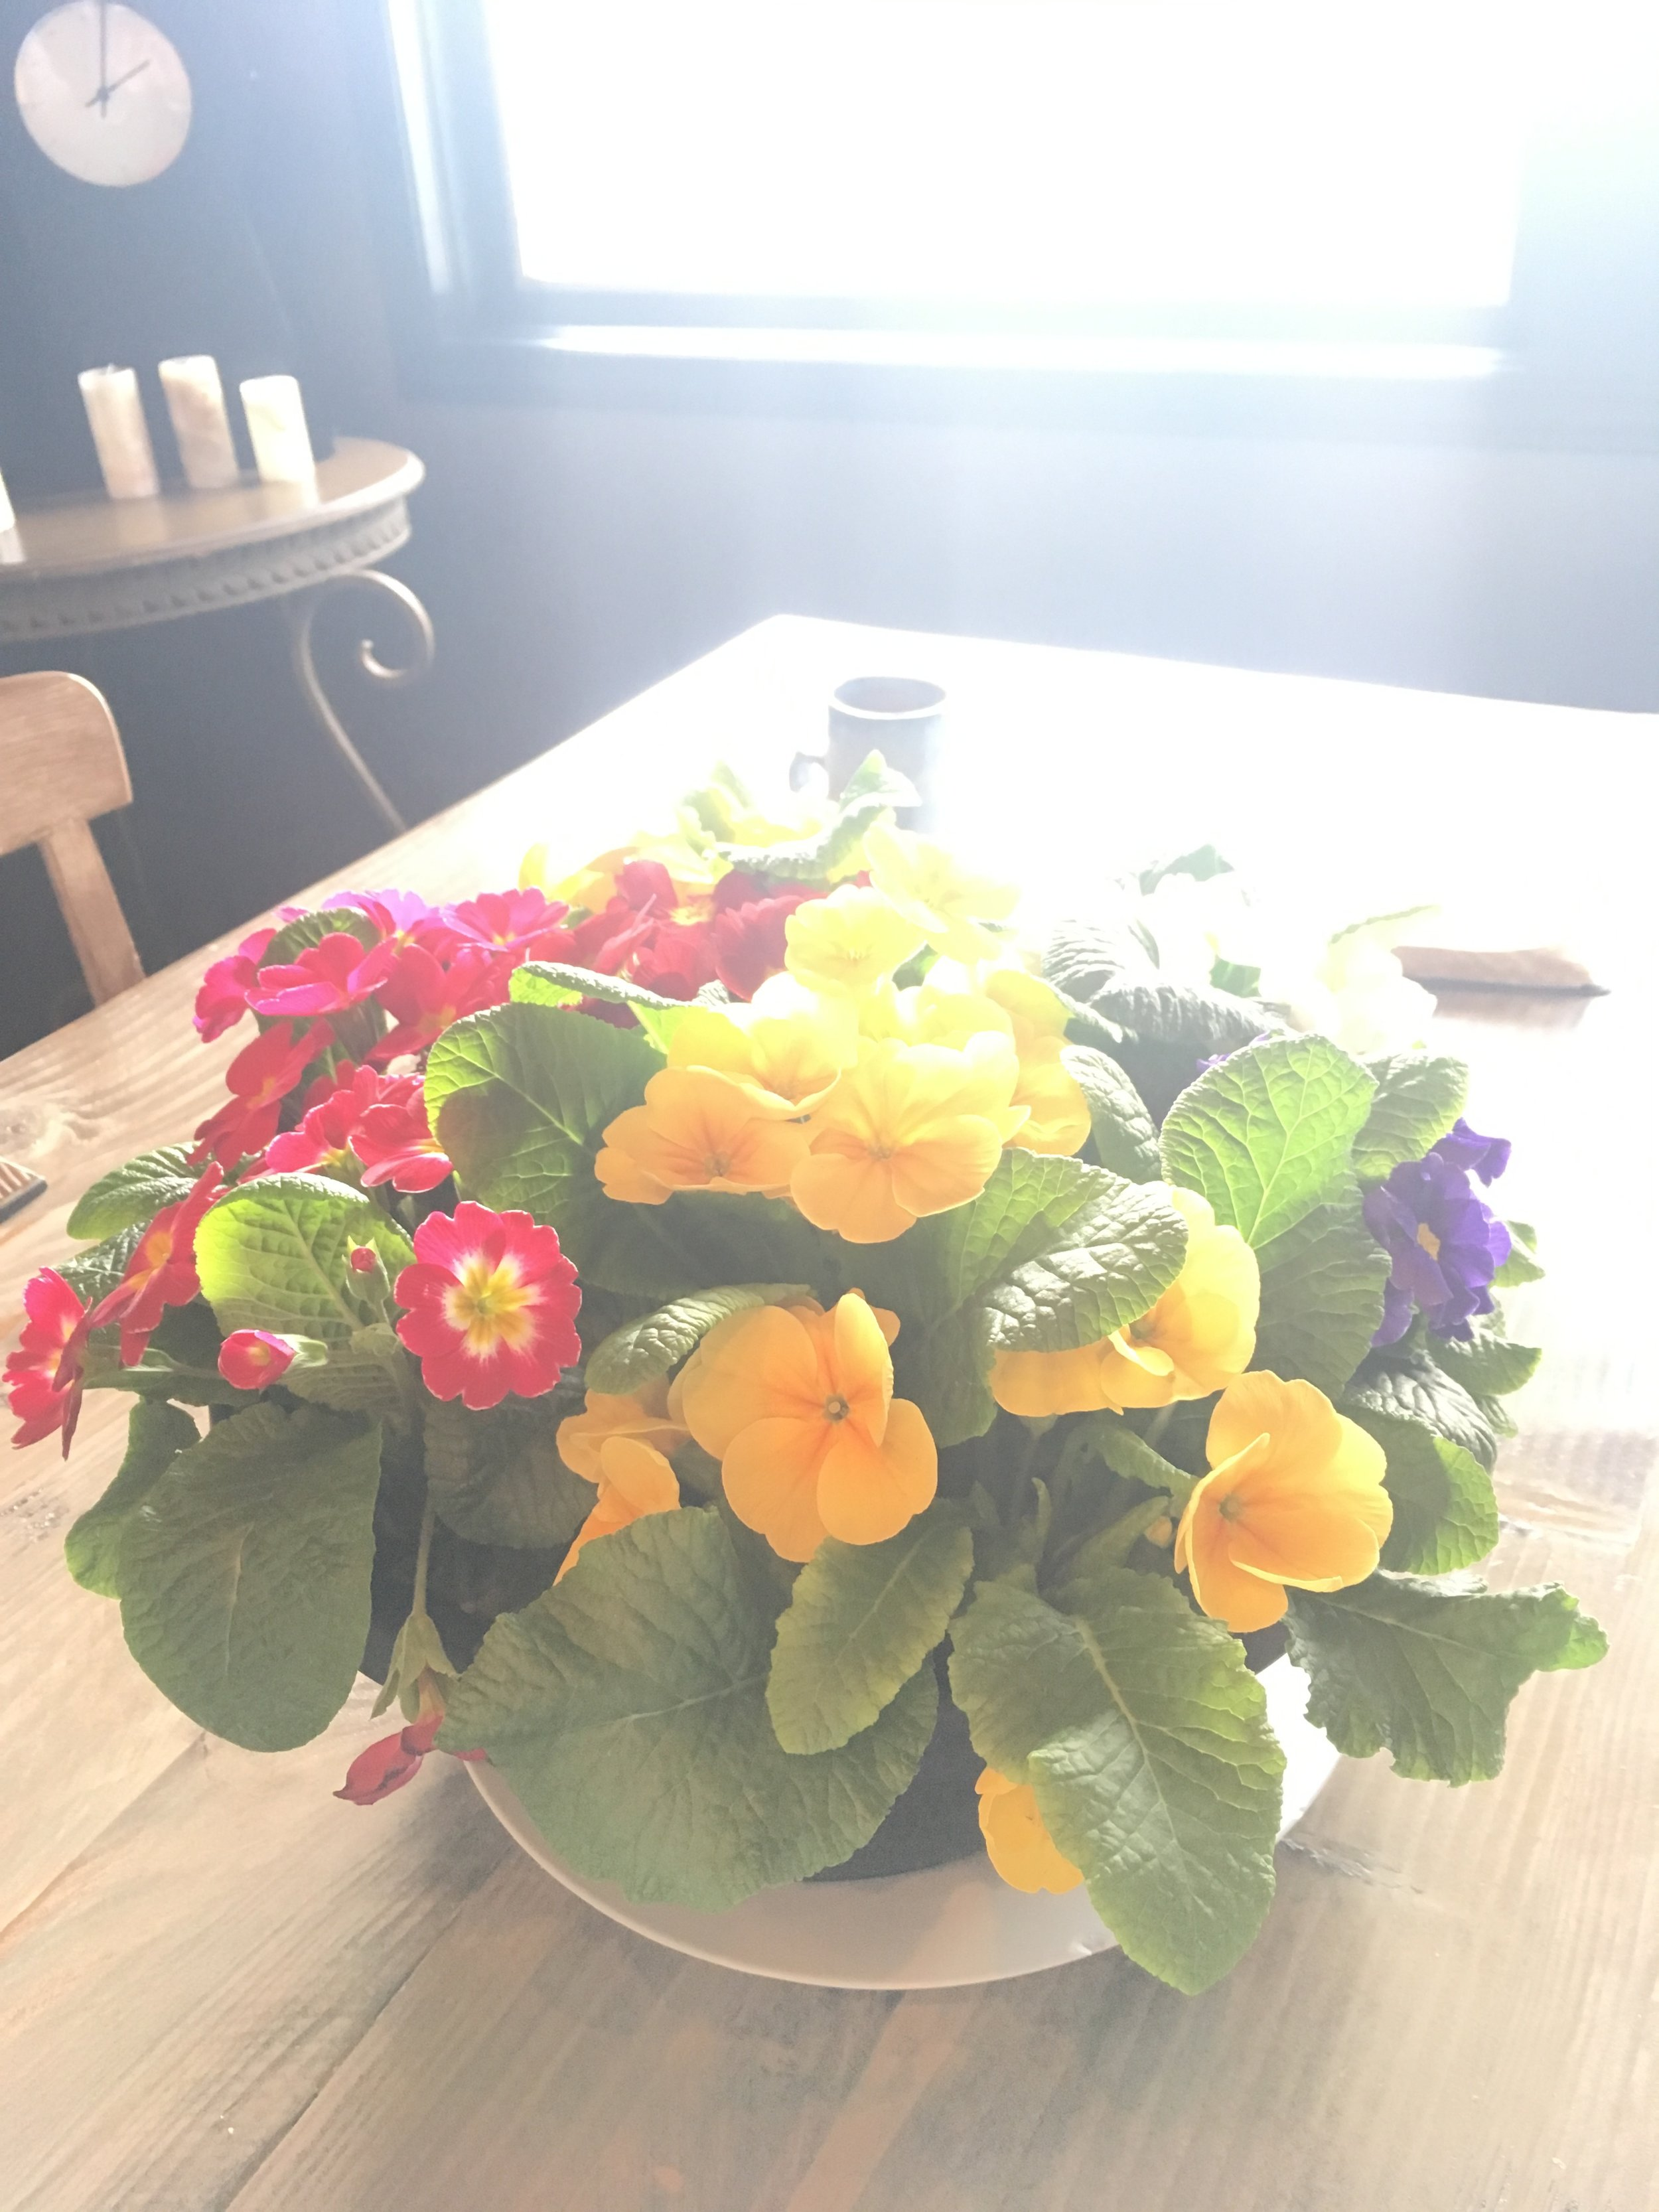 Spring Flowers on table in sunlight